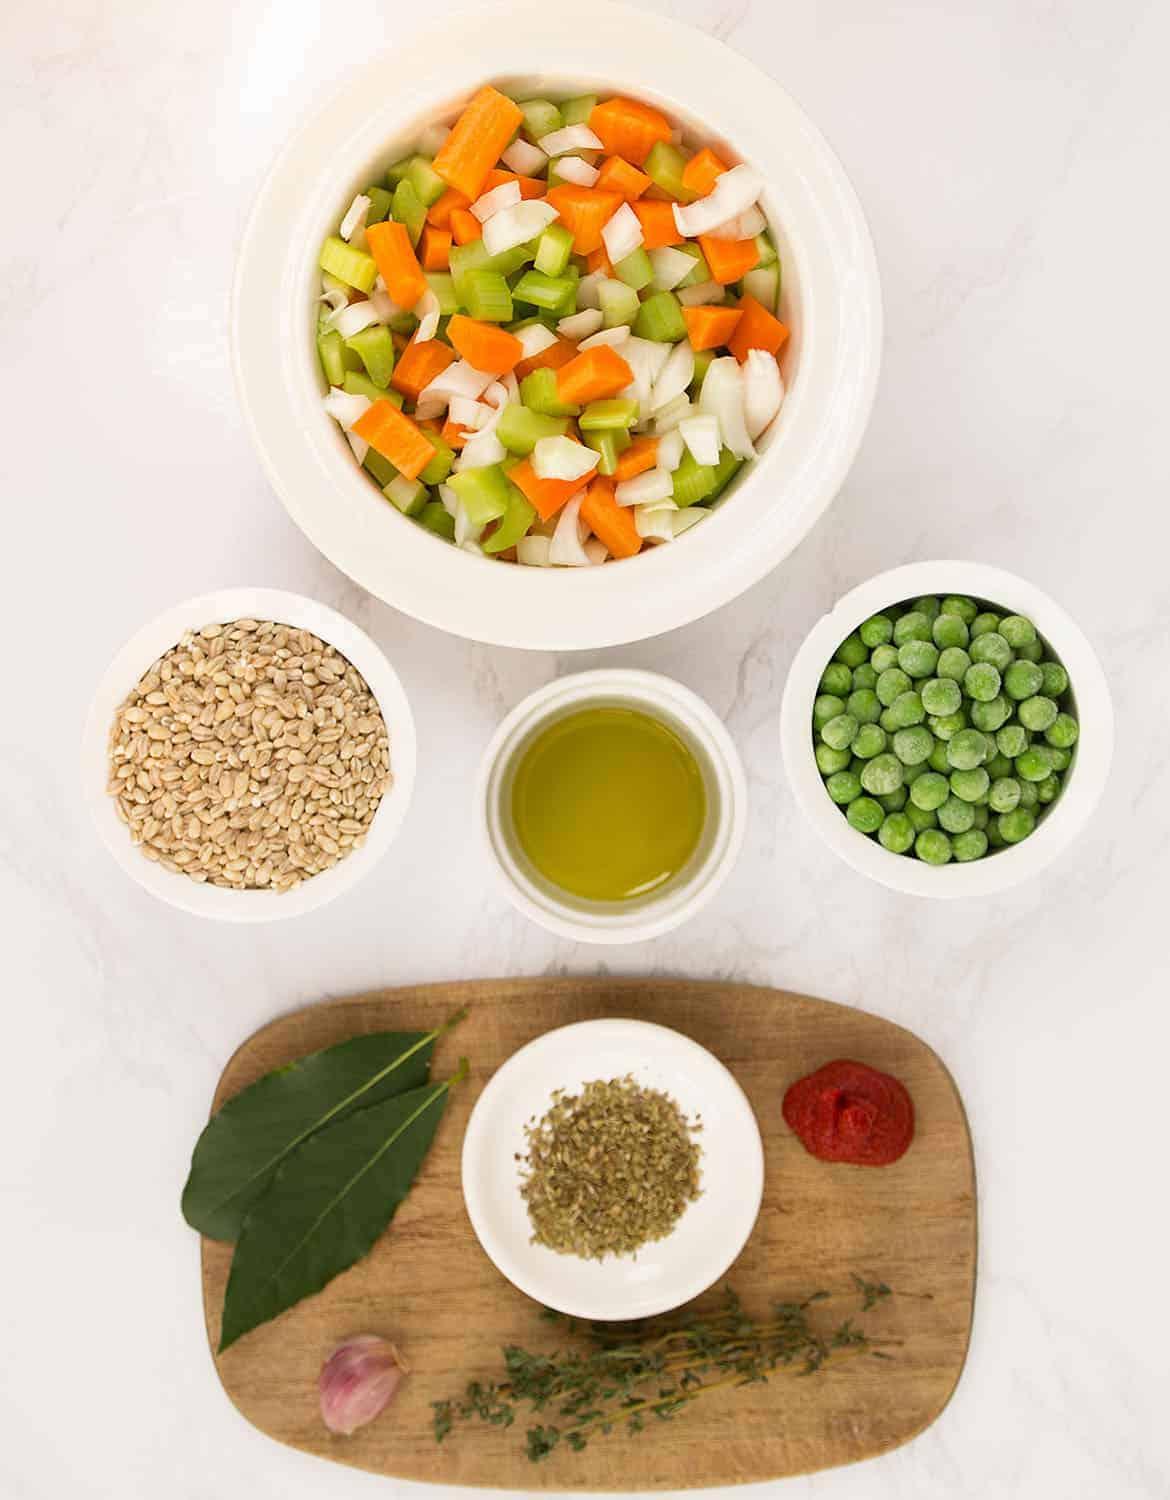 The ingredients to make this barley soup are arranged on a white marble table.